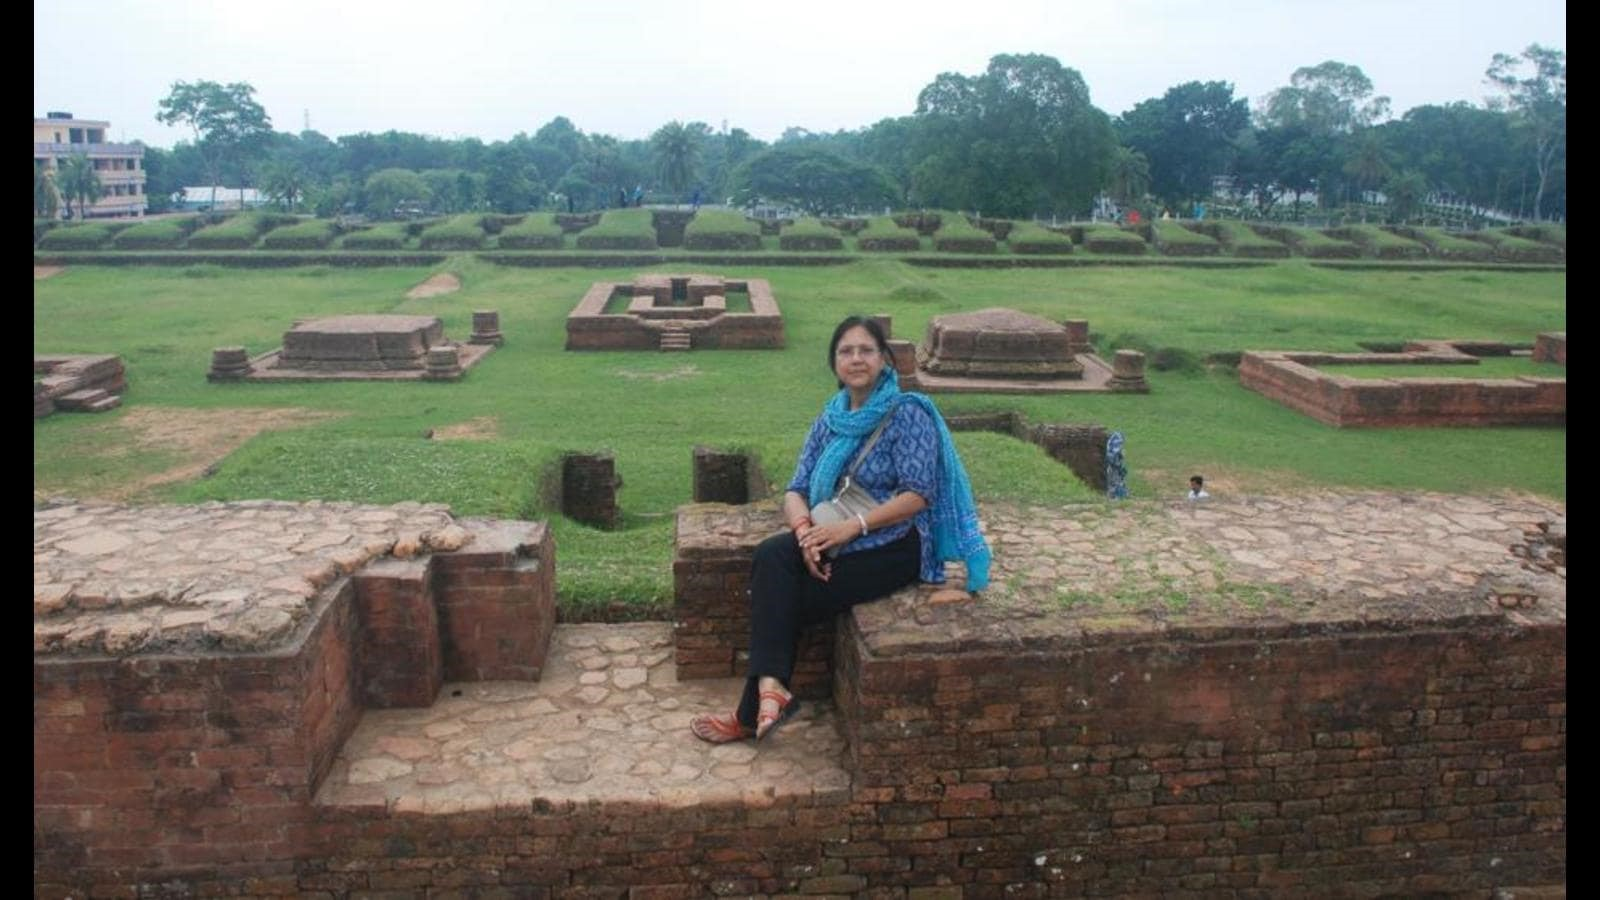 Perpetual pilgrim: A writer's quest to see Buddhist sites around the world